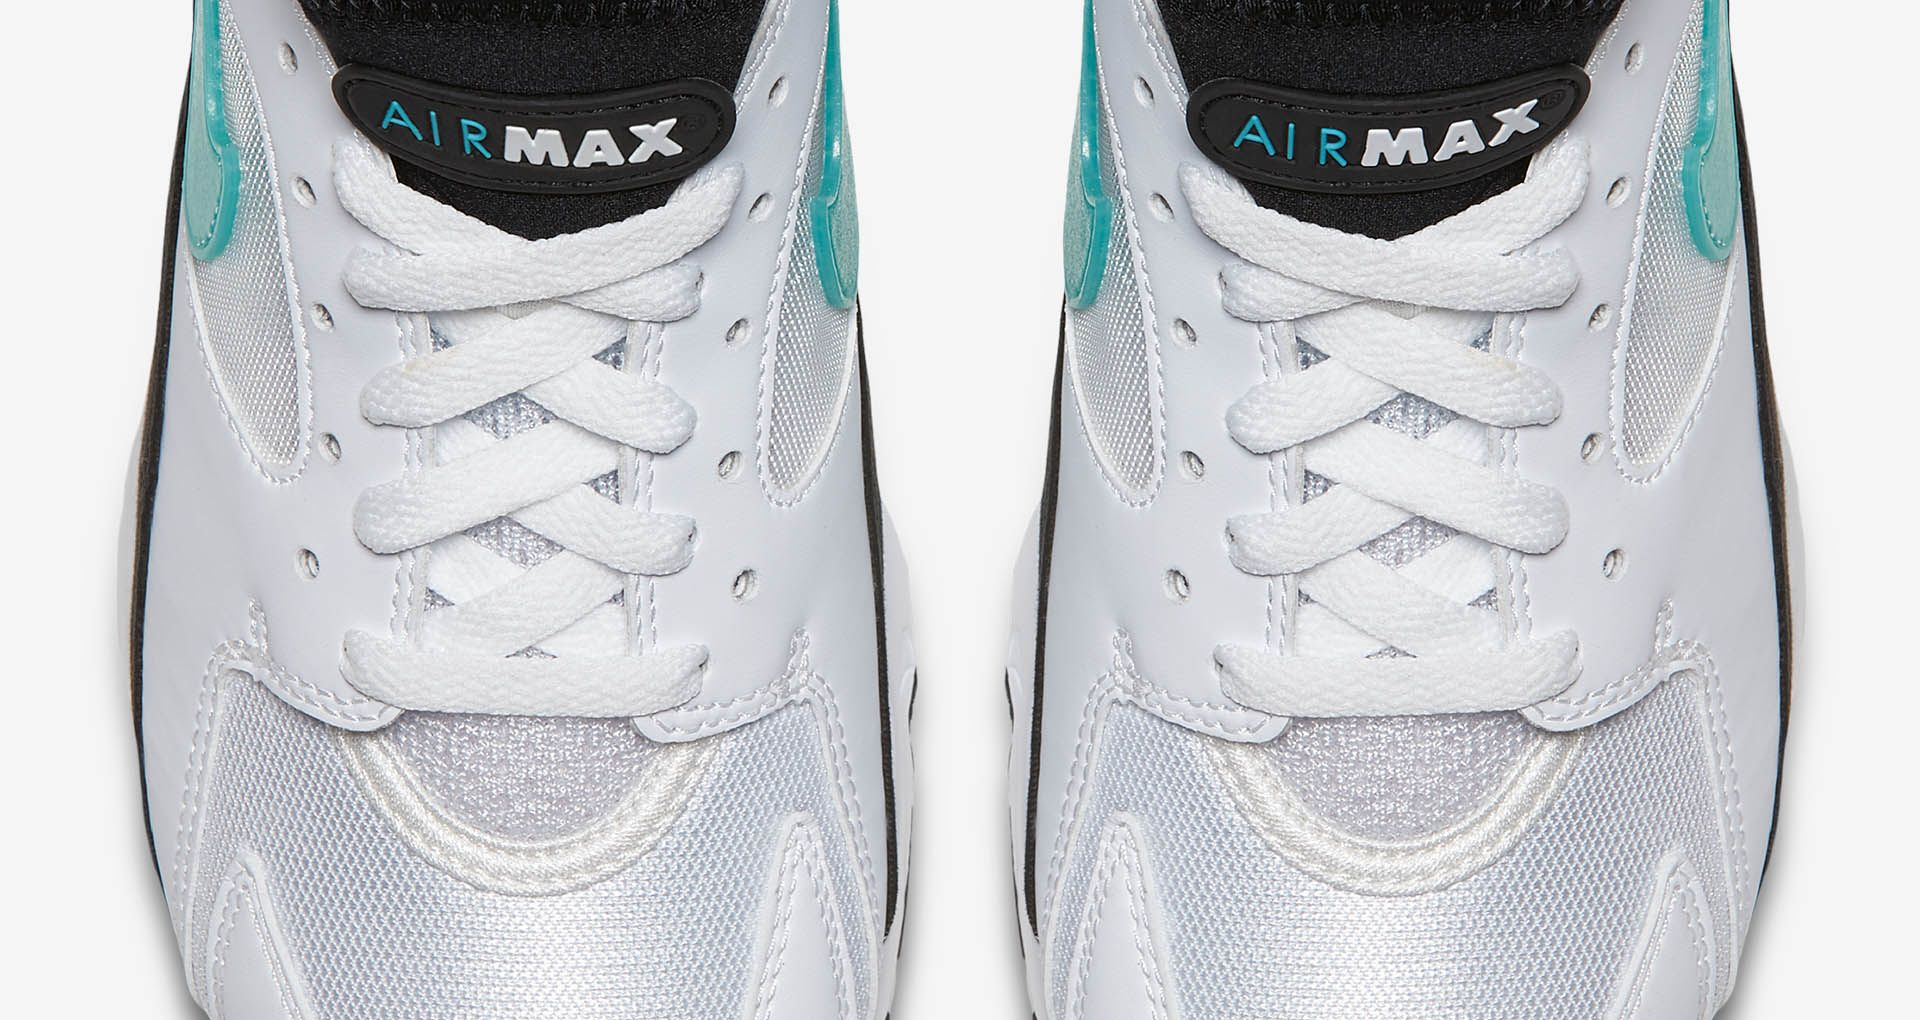 Nike Women's Air Max 93 'White & Sport Turquoise' Release